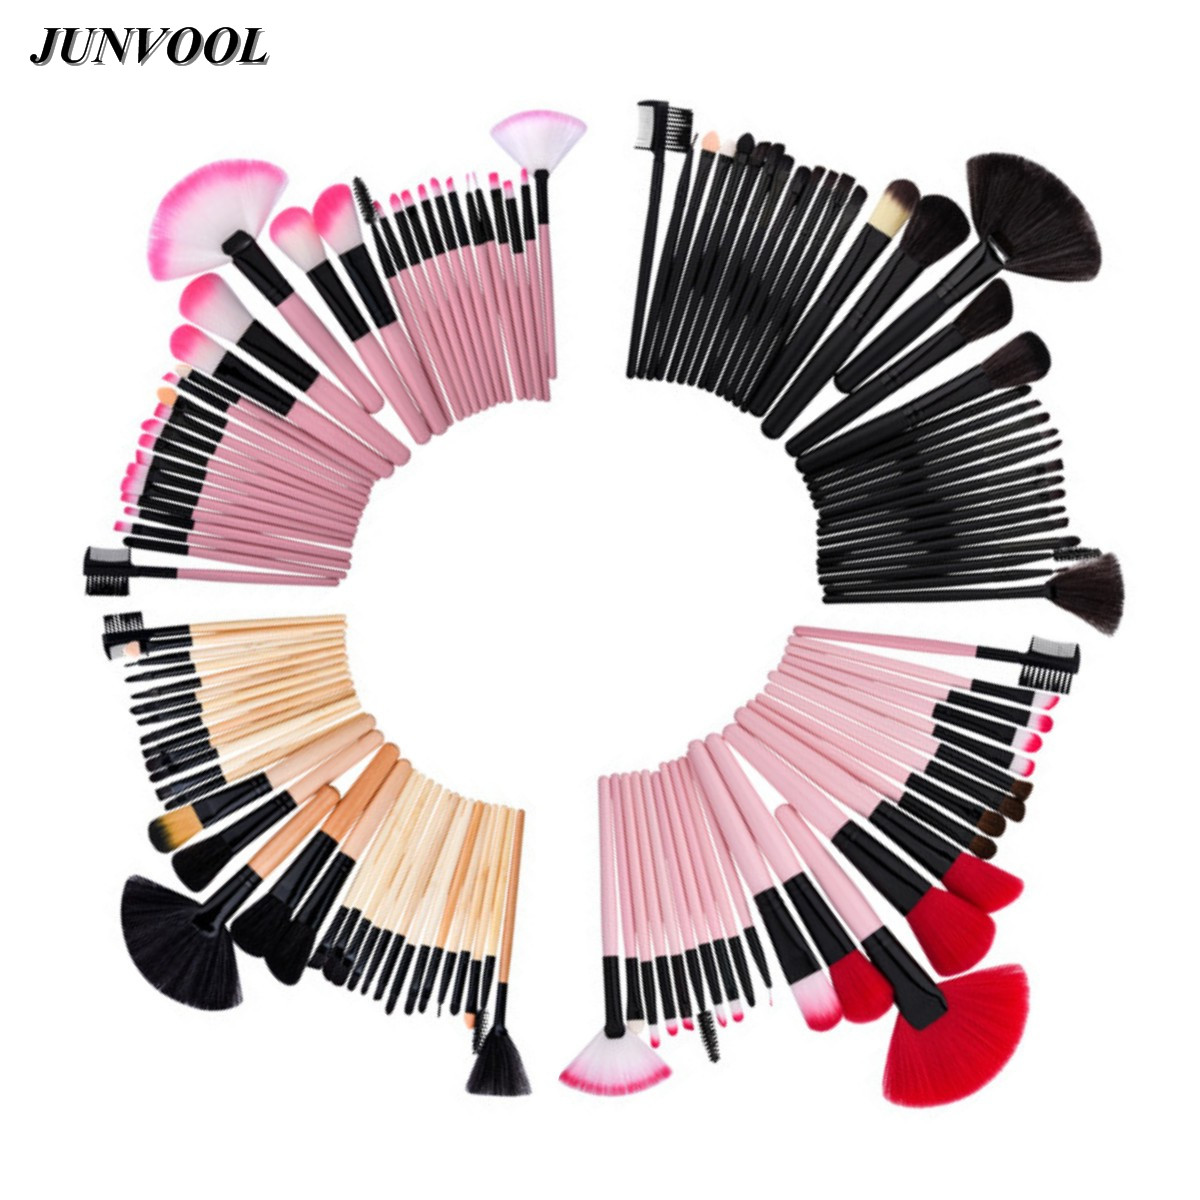 Pink Cosmetic Fan Brush Soft Synthetic Hair Make Up Tools Kit Cosmetics Makeup Brushes Black Sets Ccessories Beauty Essentials addfavor acrylic handle beauty cosmetic face clean mask brushes eyes skin care make up tools soft makeup synthetic hair brush